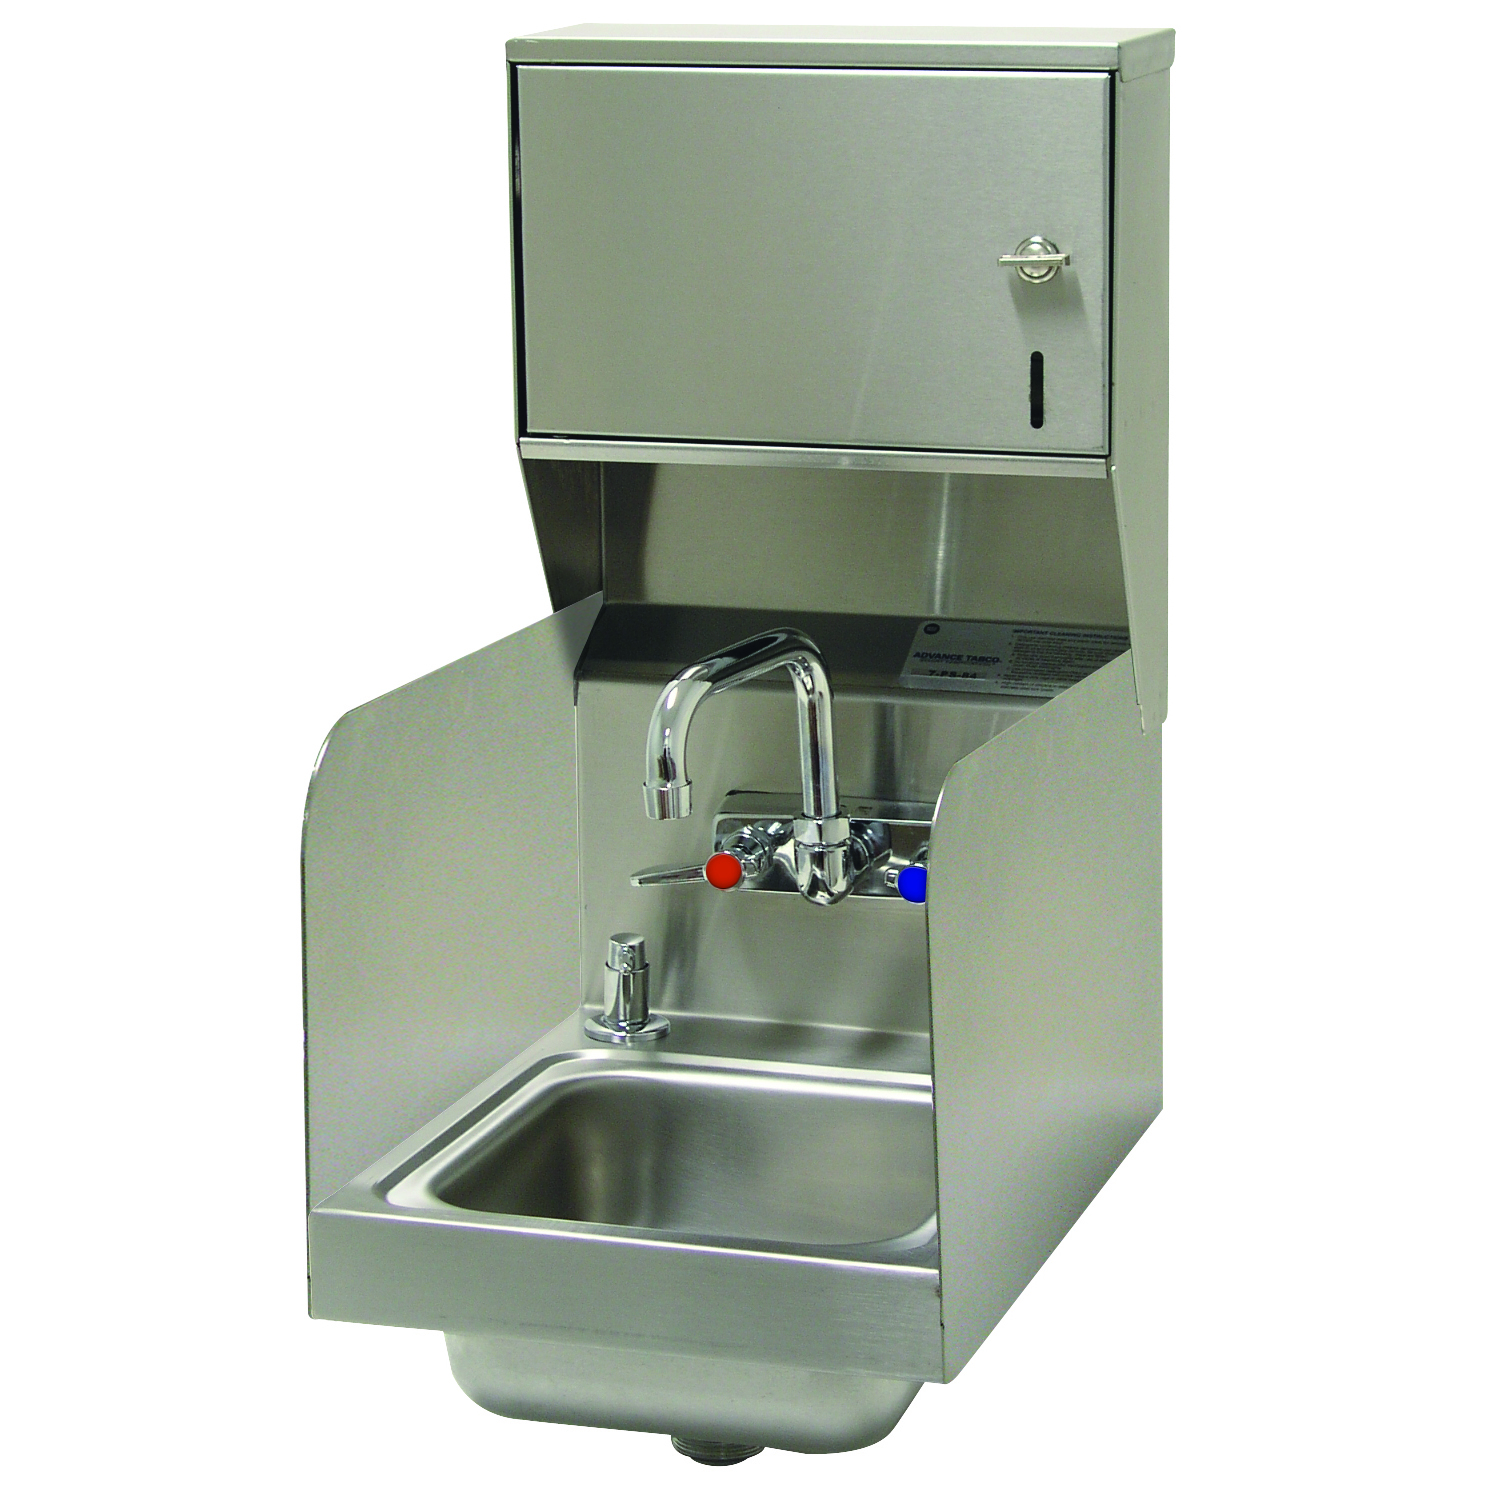 Advance Tabco 7-PS-73-1X sink, hand